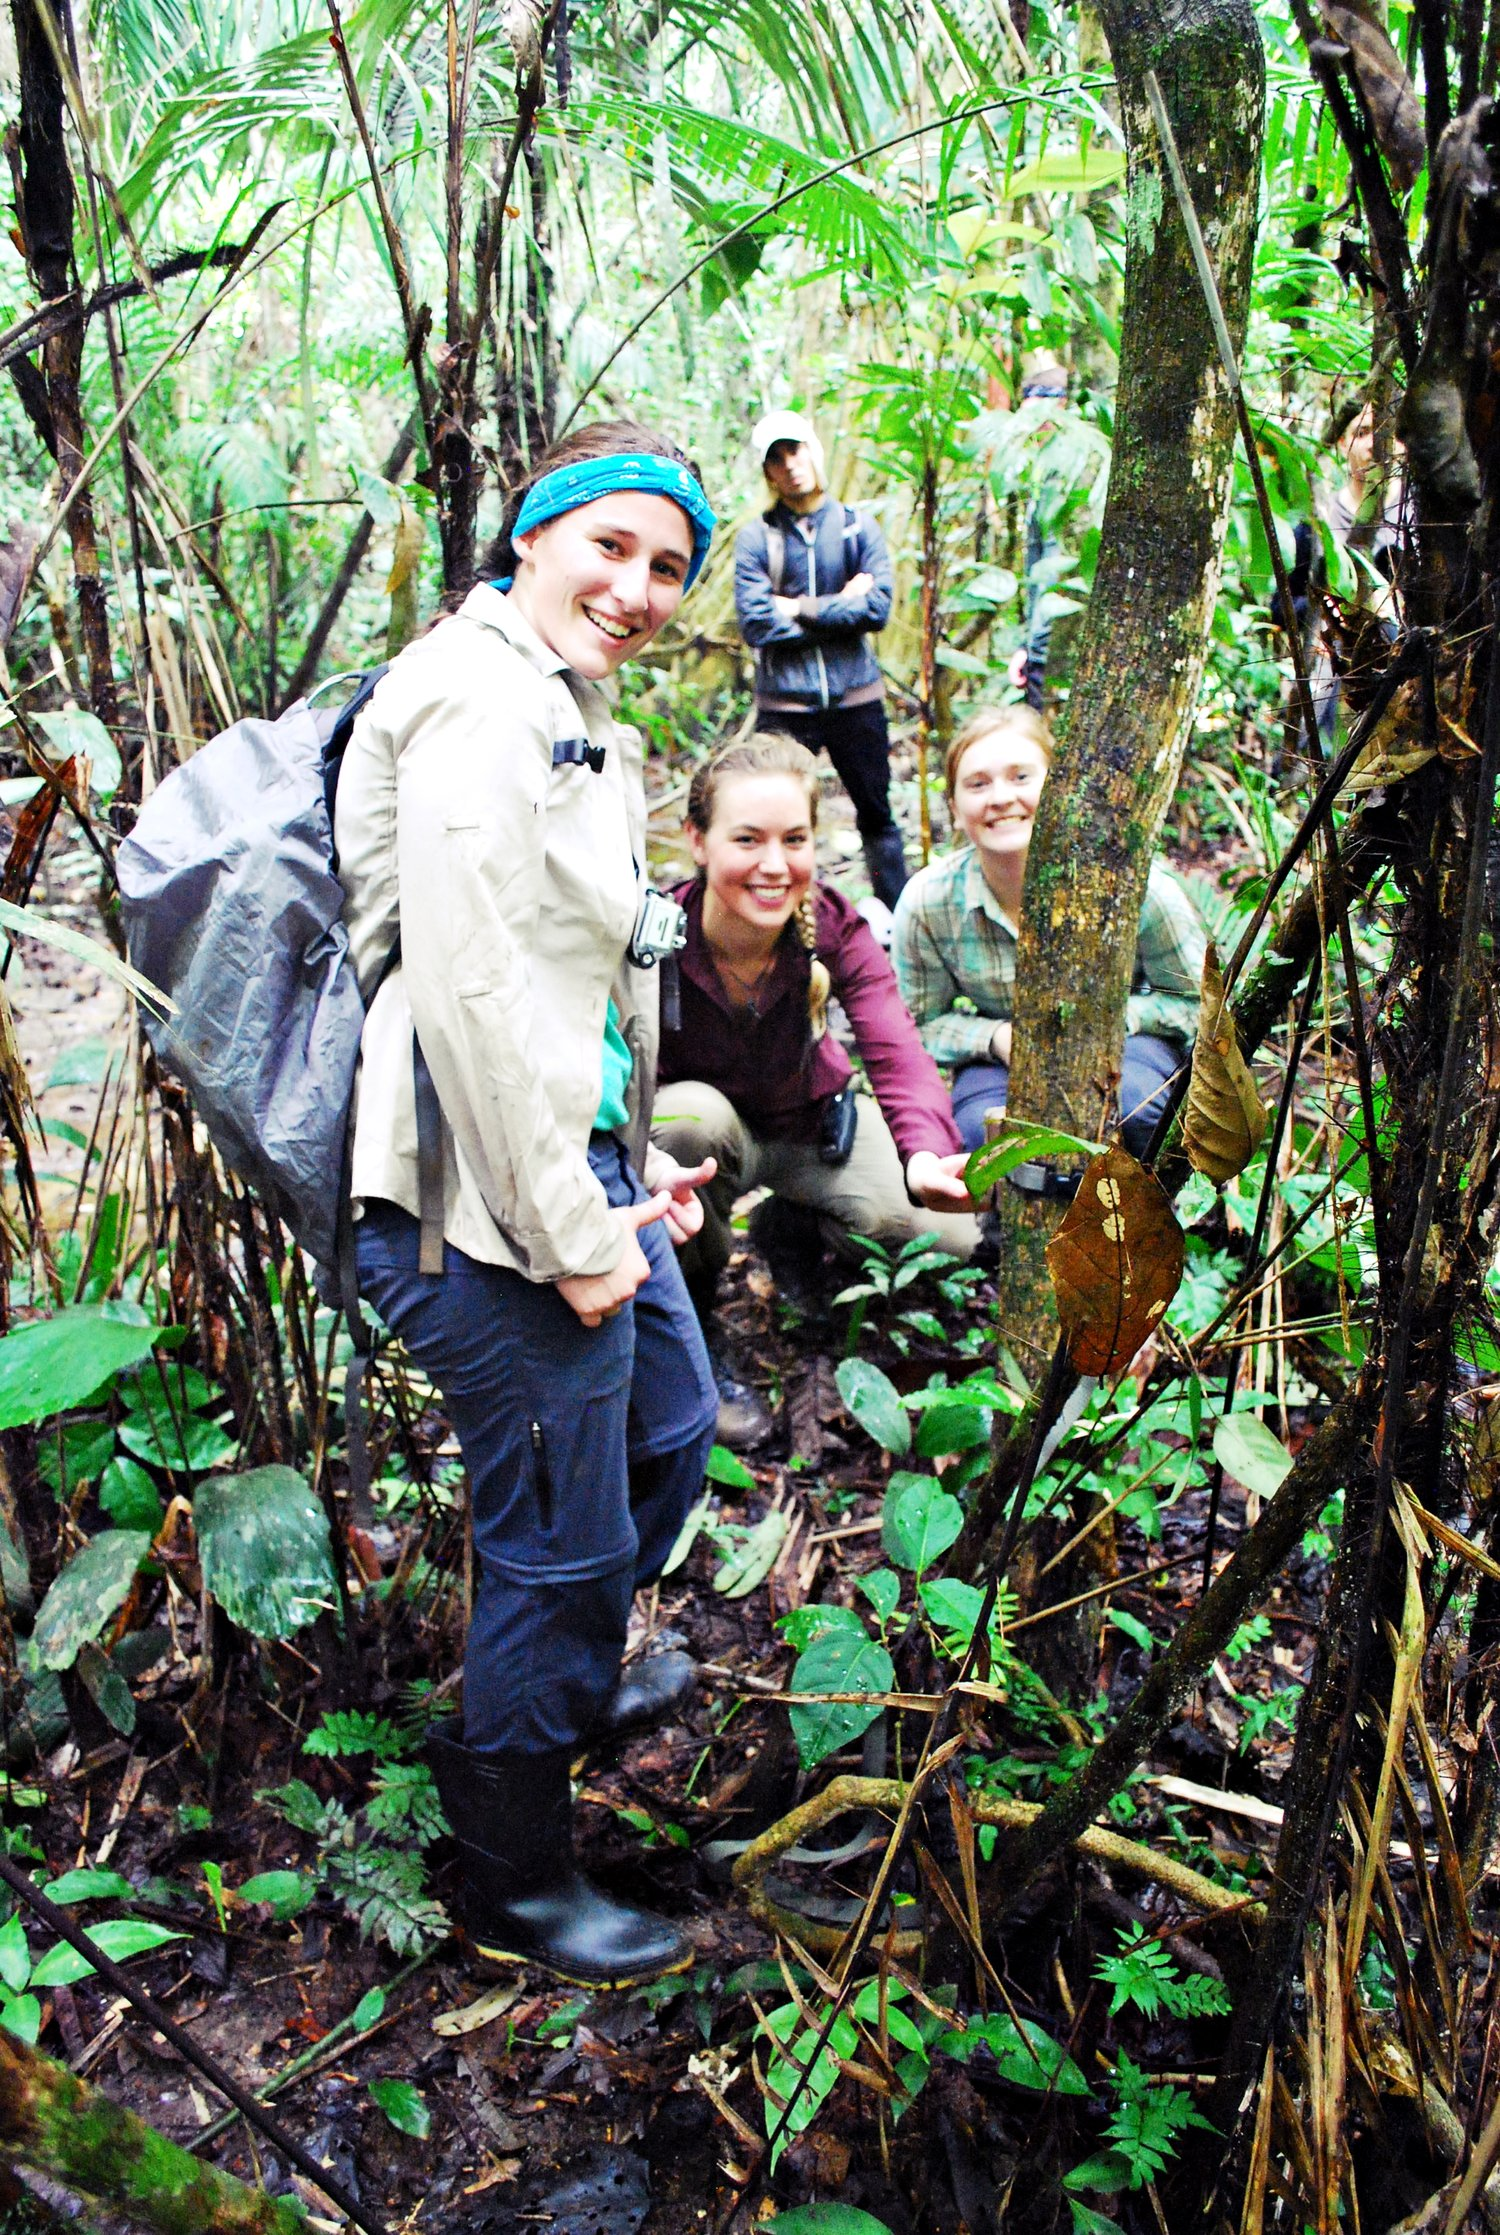 Pictured: The Hoja Nueva team camera trapping in the Amazon